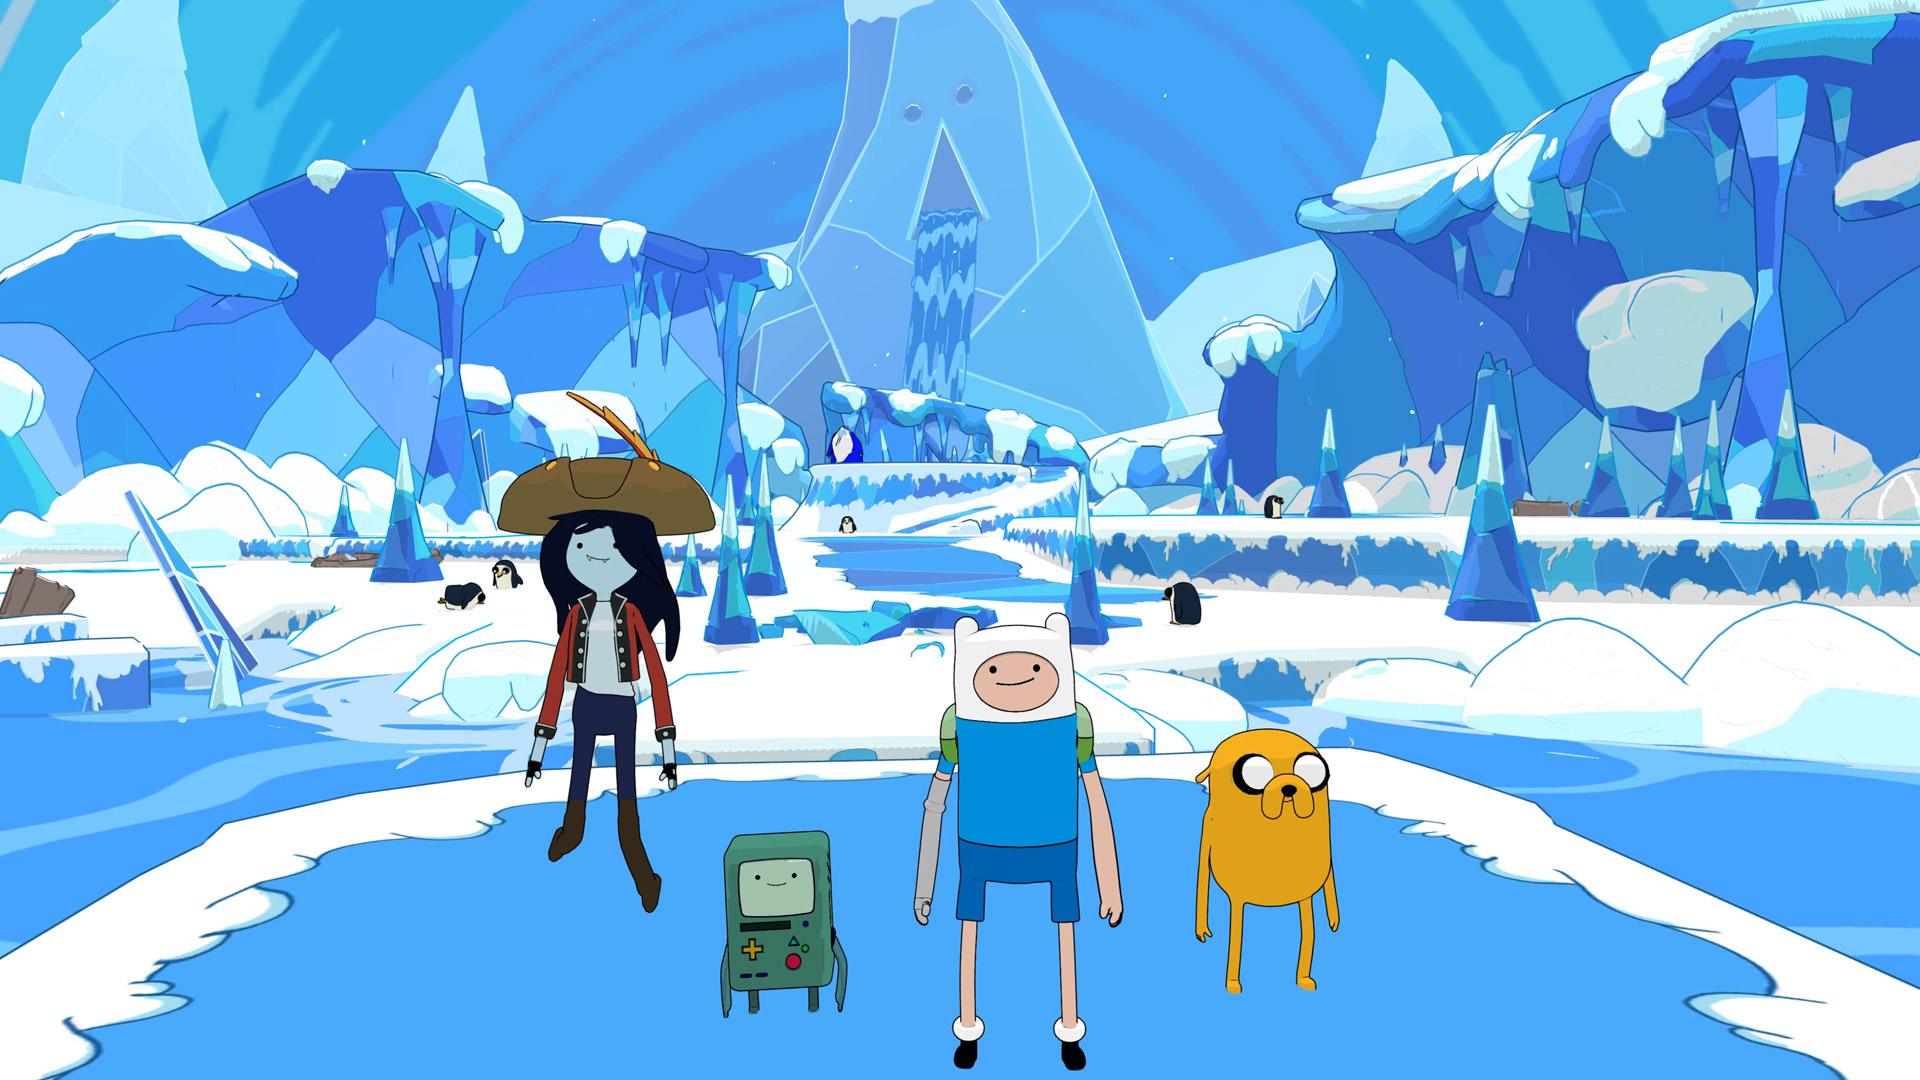 Adventure Time: Pirates of the Enchiridion Wallpaper in 1920x1080